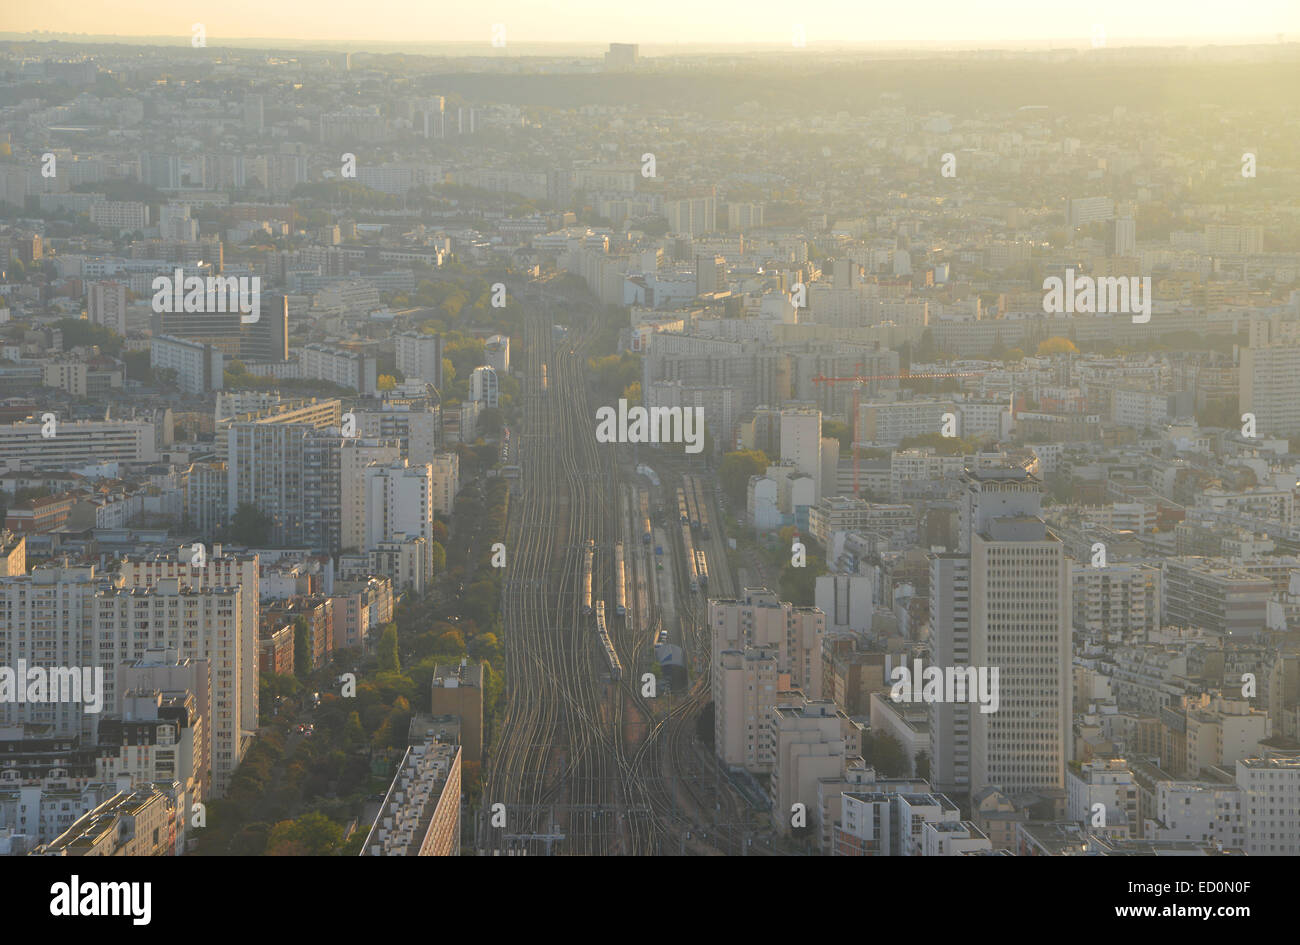 Looking South East along train lines running into Gare Montparnasse as the sun sets over Paris - Stock Image